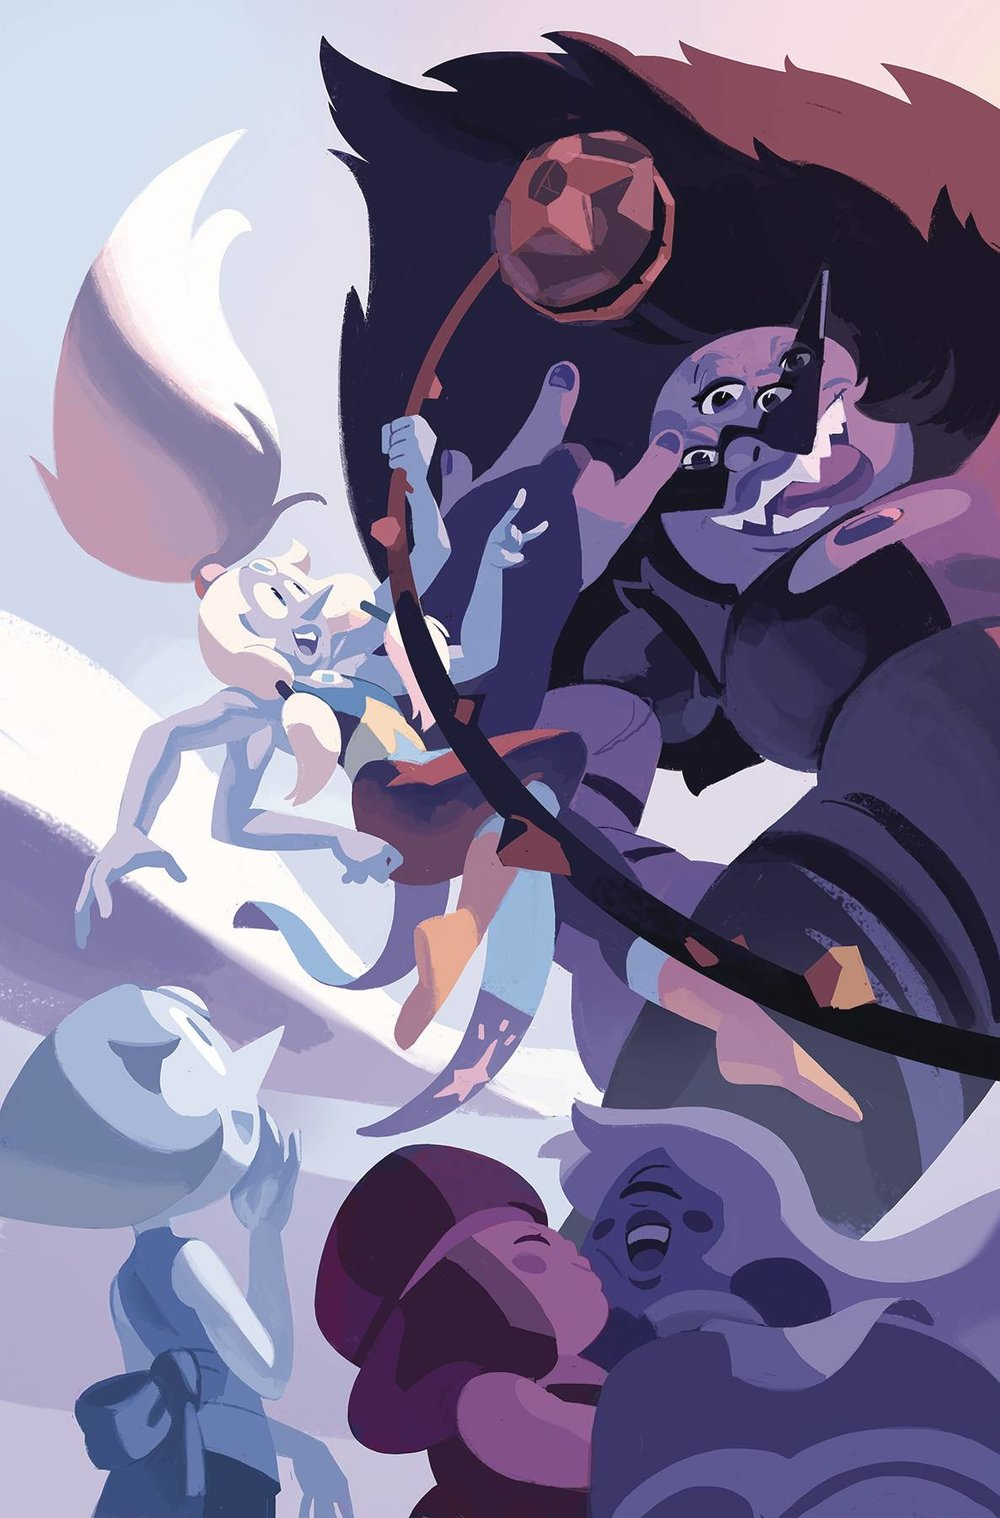 STEVEN UNIVERSE FUSION FRENZY 1 MAIN CVR A CONNECTING.jpg